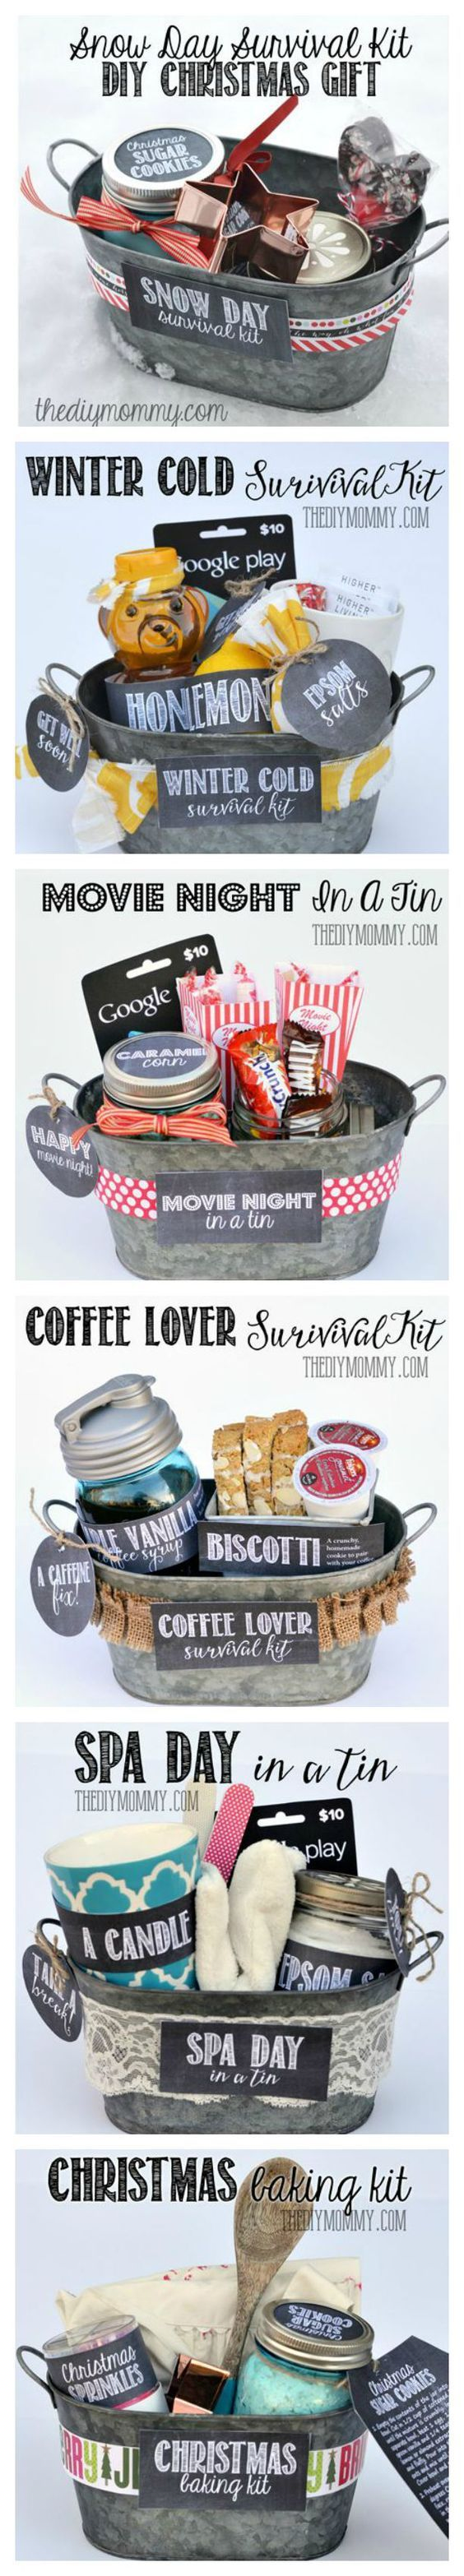 850 best gifts images on pinterest crafts creative ideas and diy 6 diy gifts in a tin ideas via the diy mommy do it yourself gift solutioingenieria